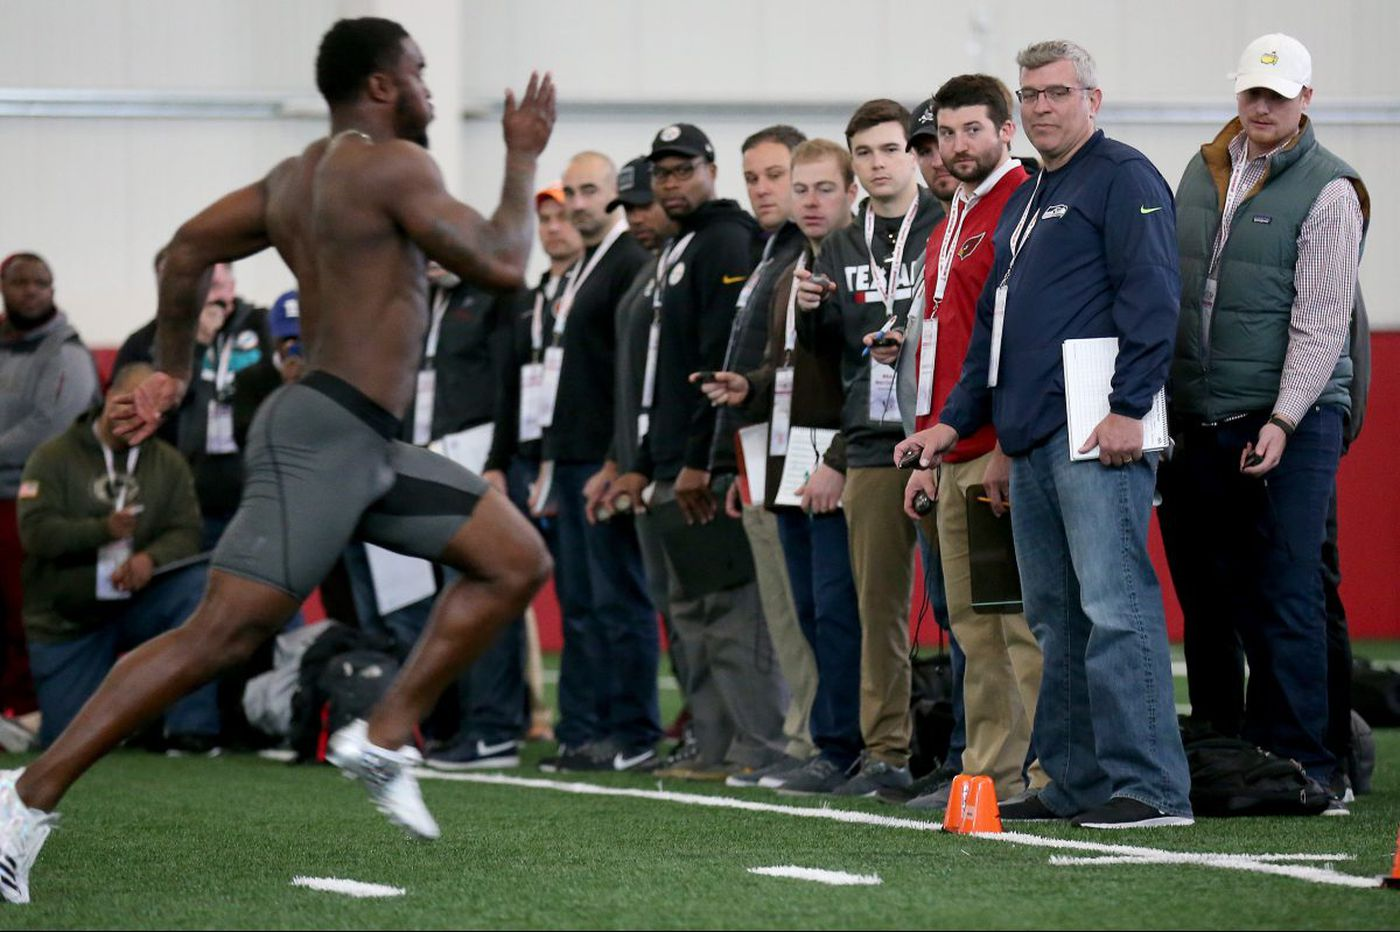 Sean Chandler improves 40-yard dash time at Temple's pro day